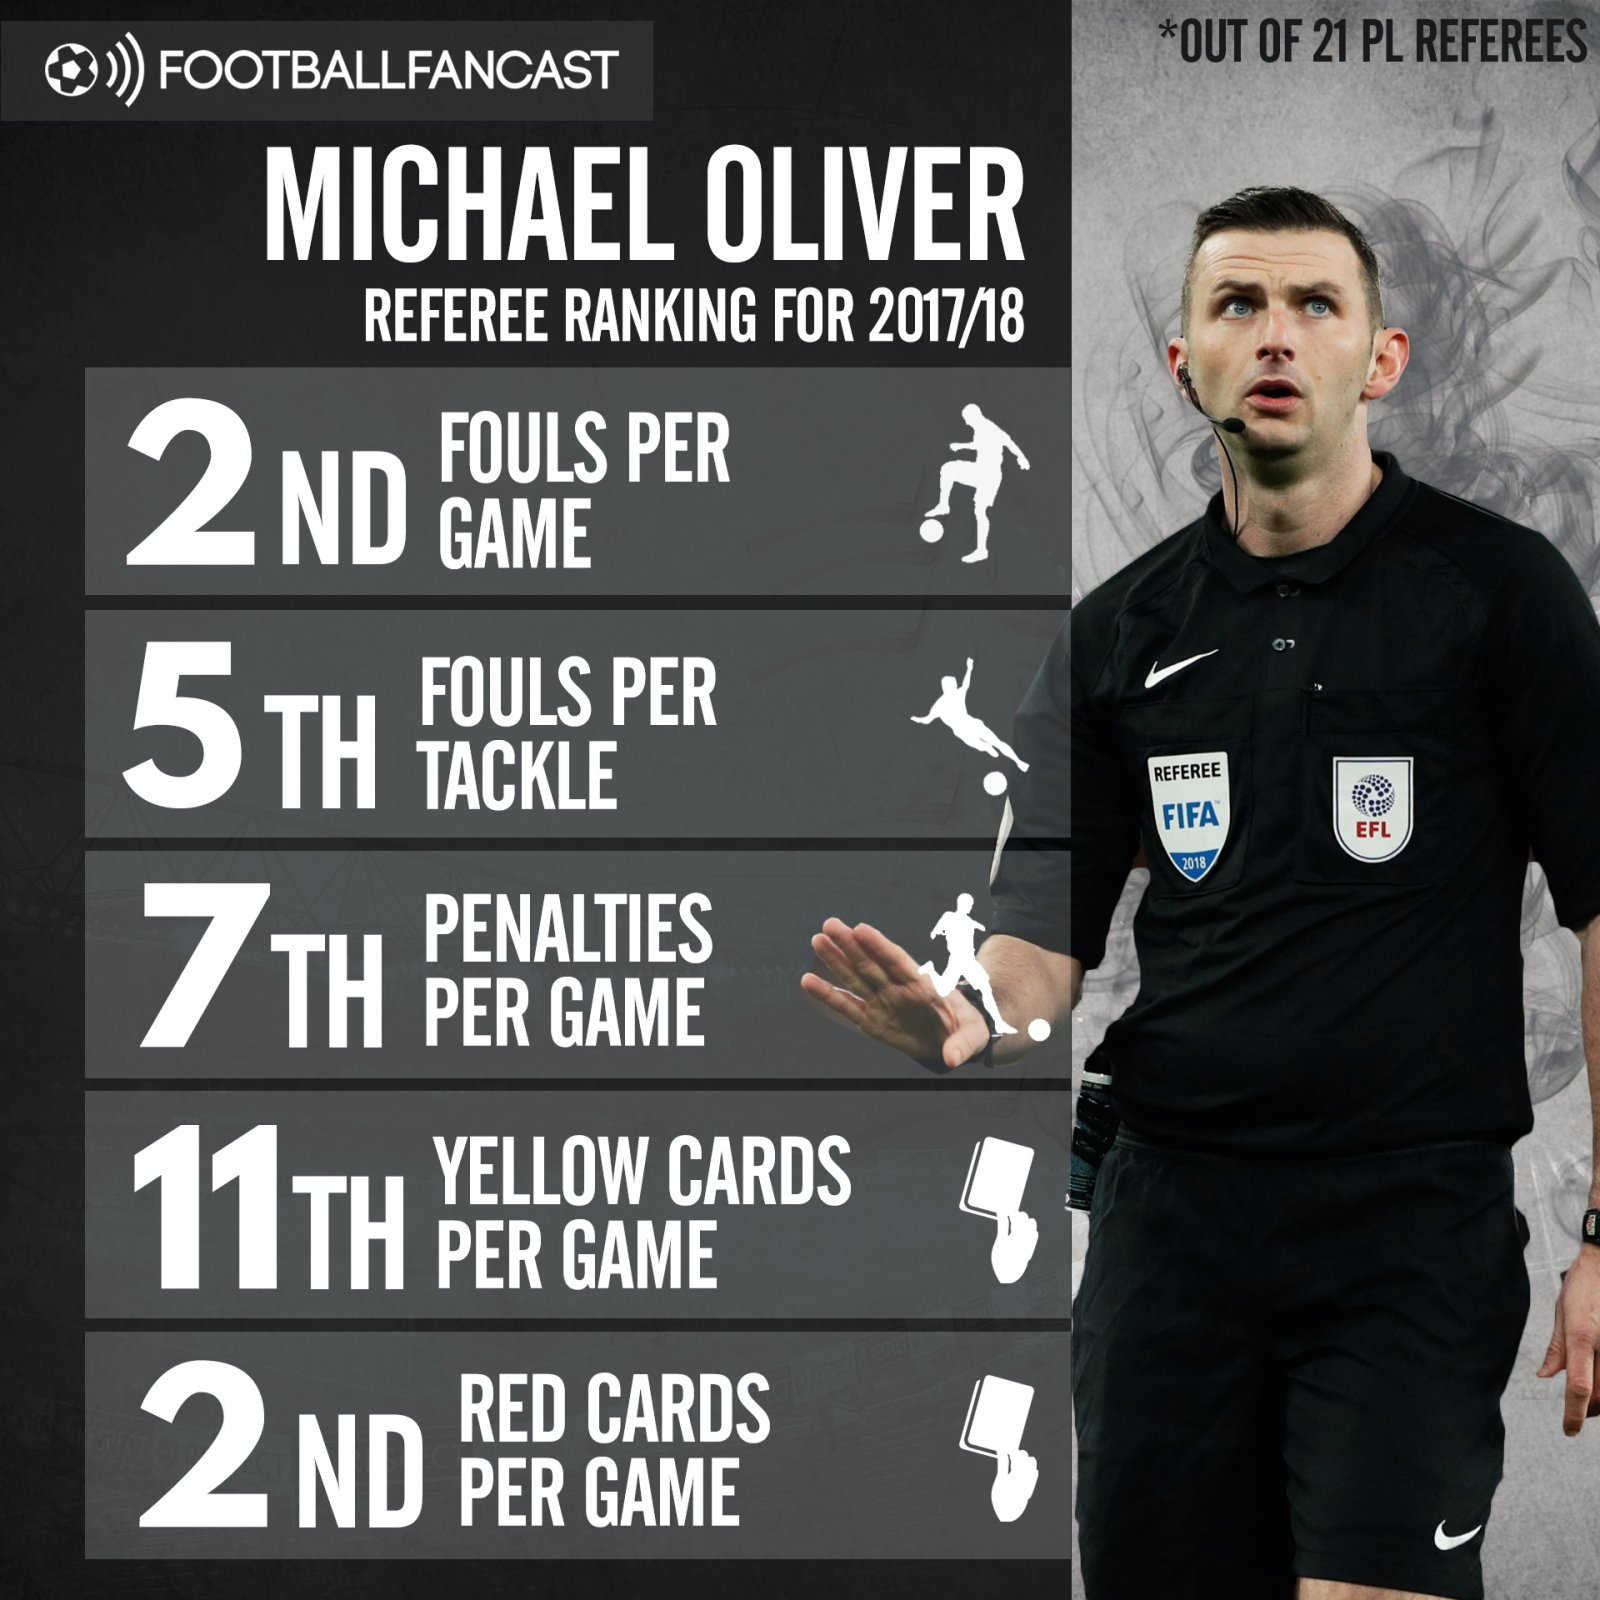 Michael Oliver's refereeing stats from 2017-18